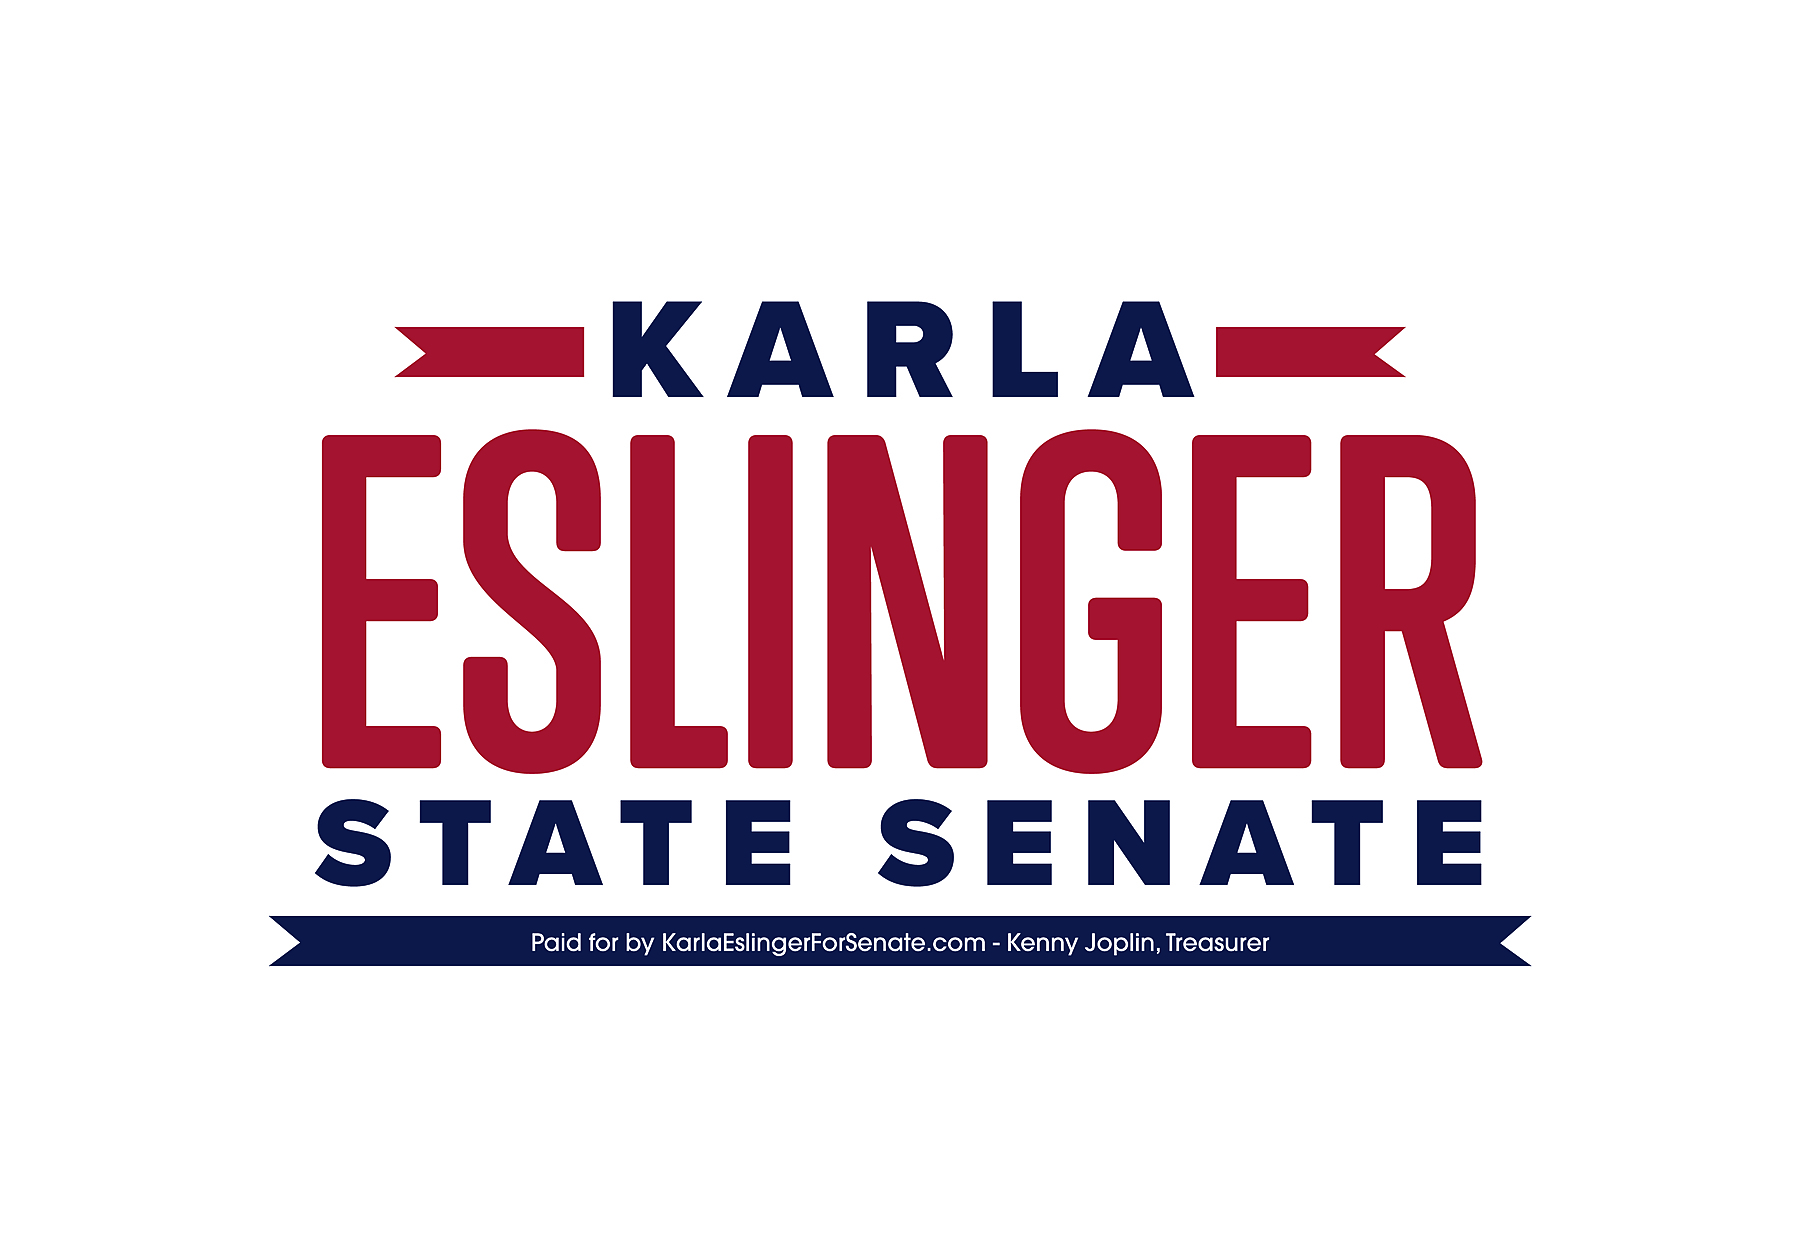 KarlaEslingerforSenate.com: General Fund